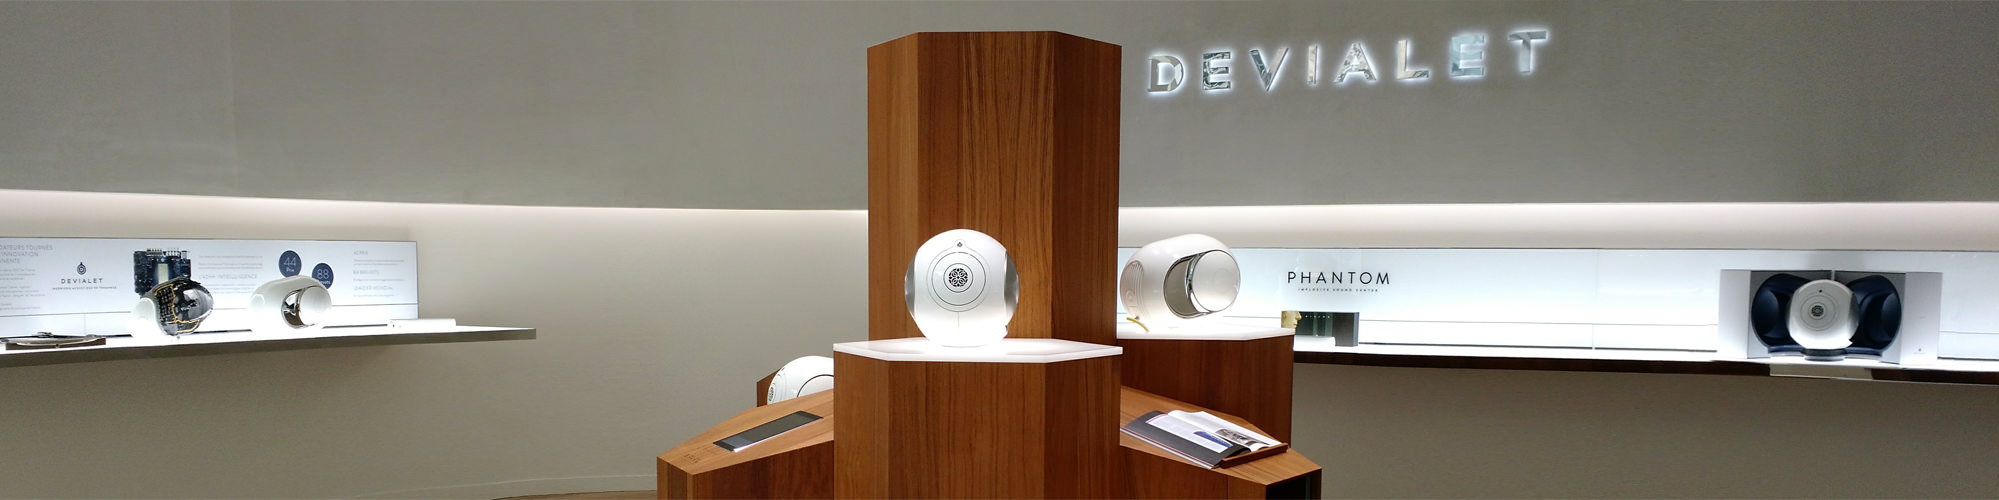 devialet-flagship-paris